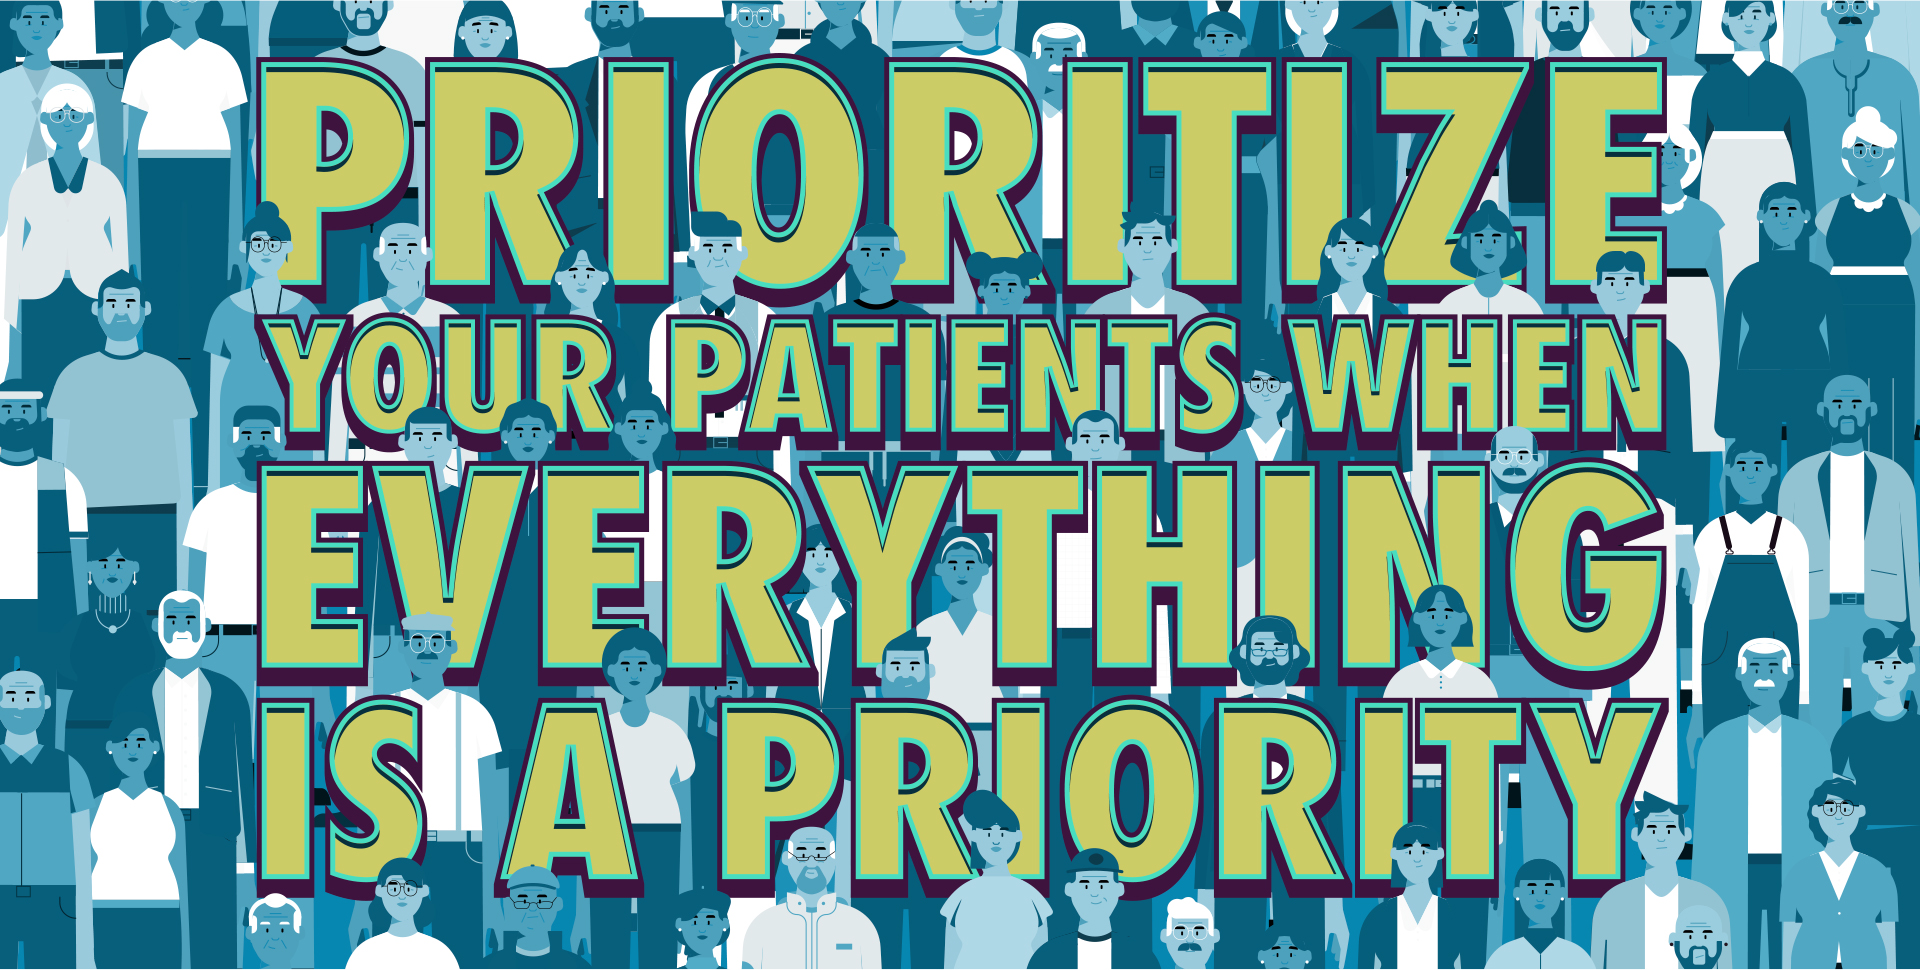 Prioritize your patients when everything is a priority